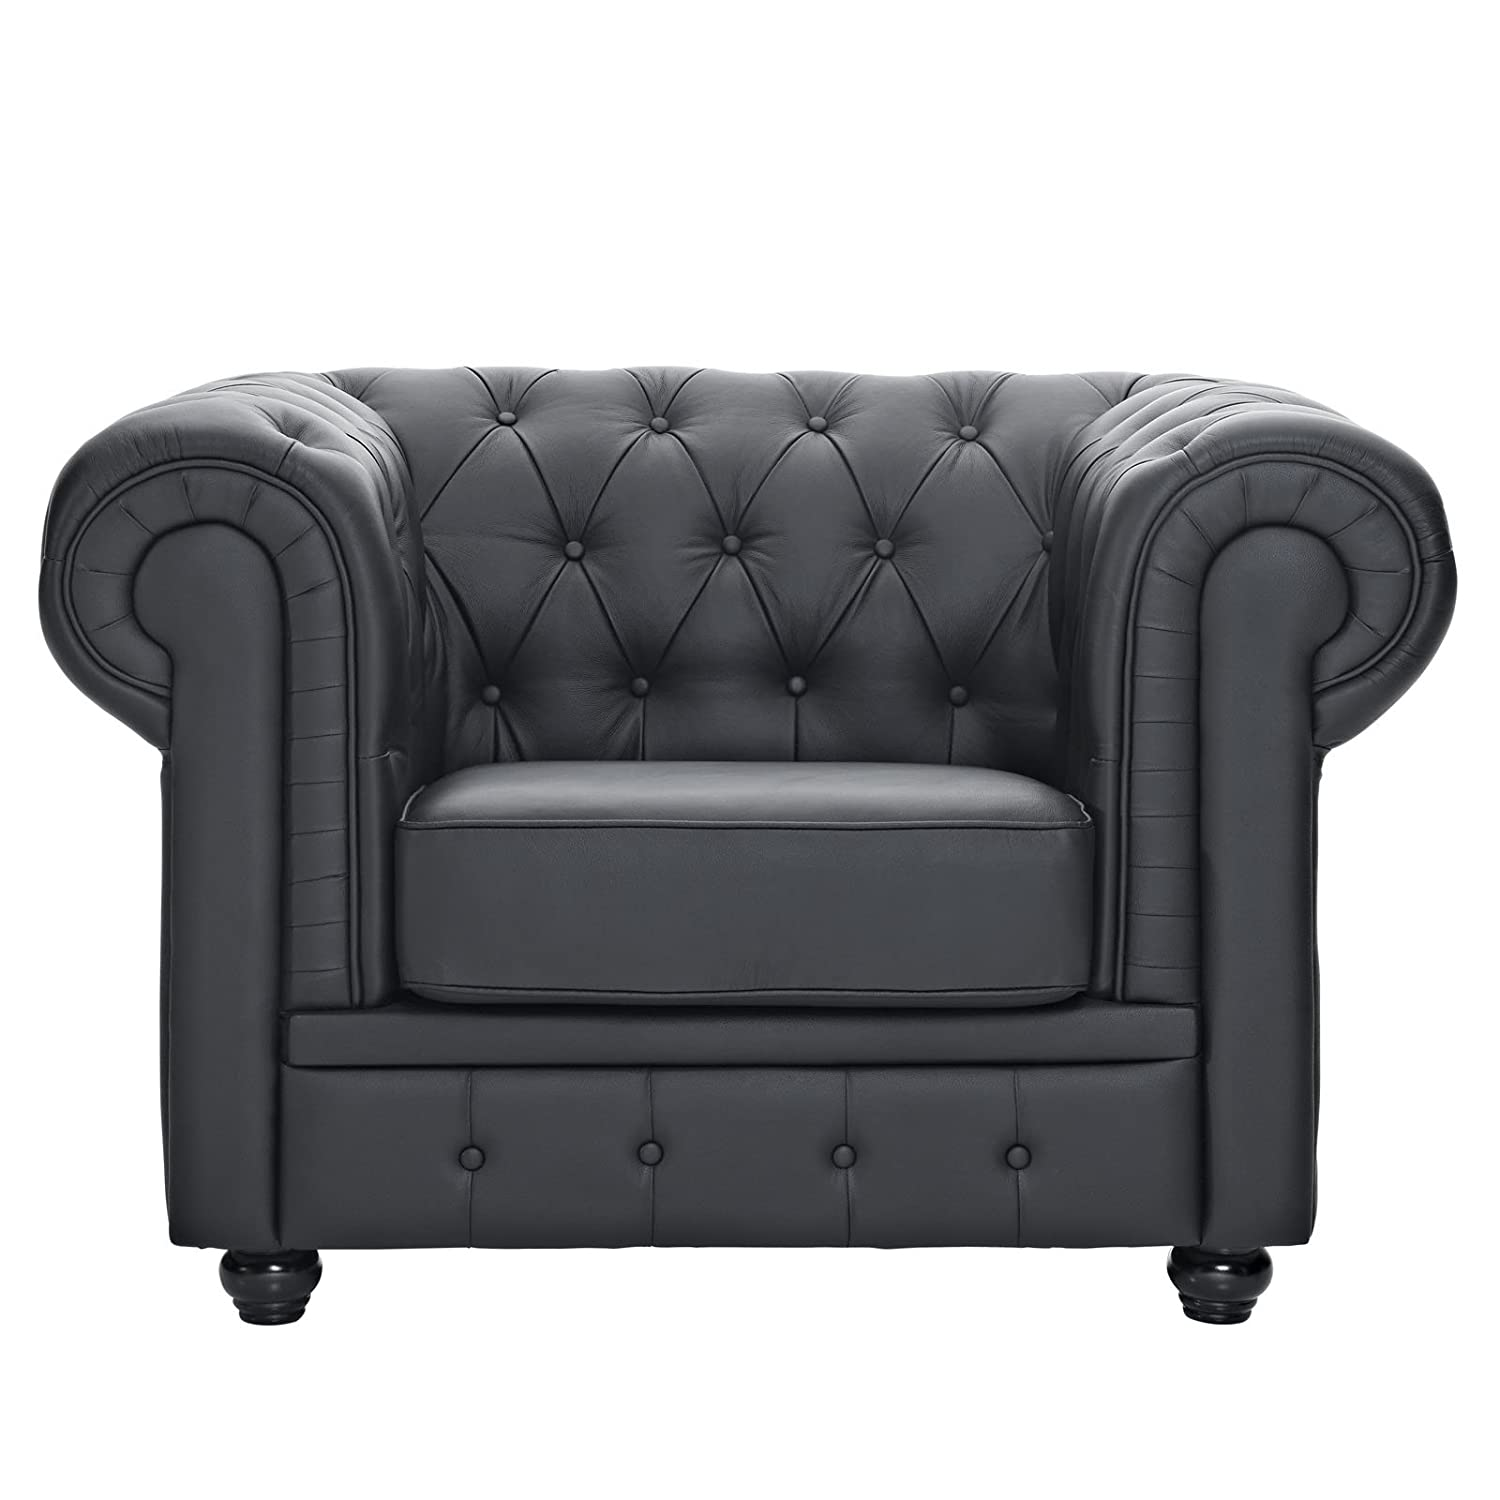 wampamppamp0 open plan office. beautiful small office couch amazoncom modway chesterfield armchair in black leather and for creativity design wampamppamp0 open plan e